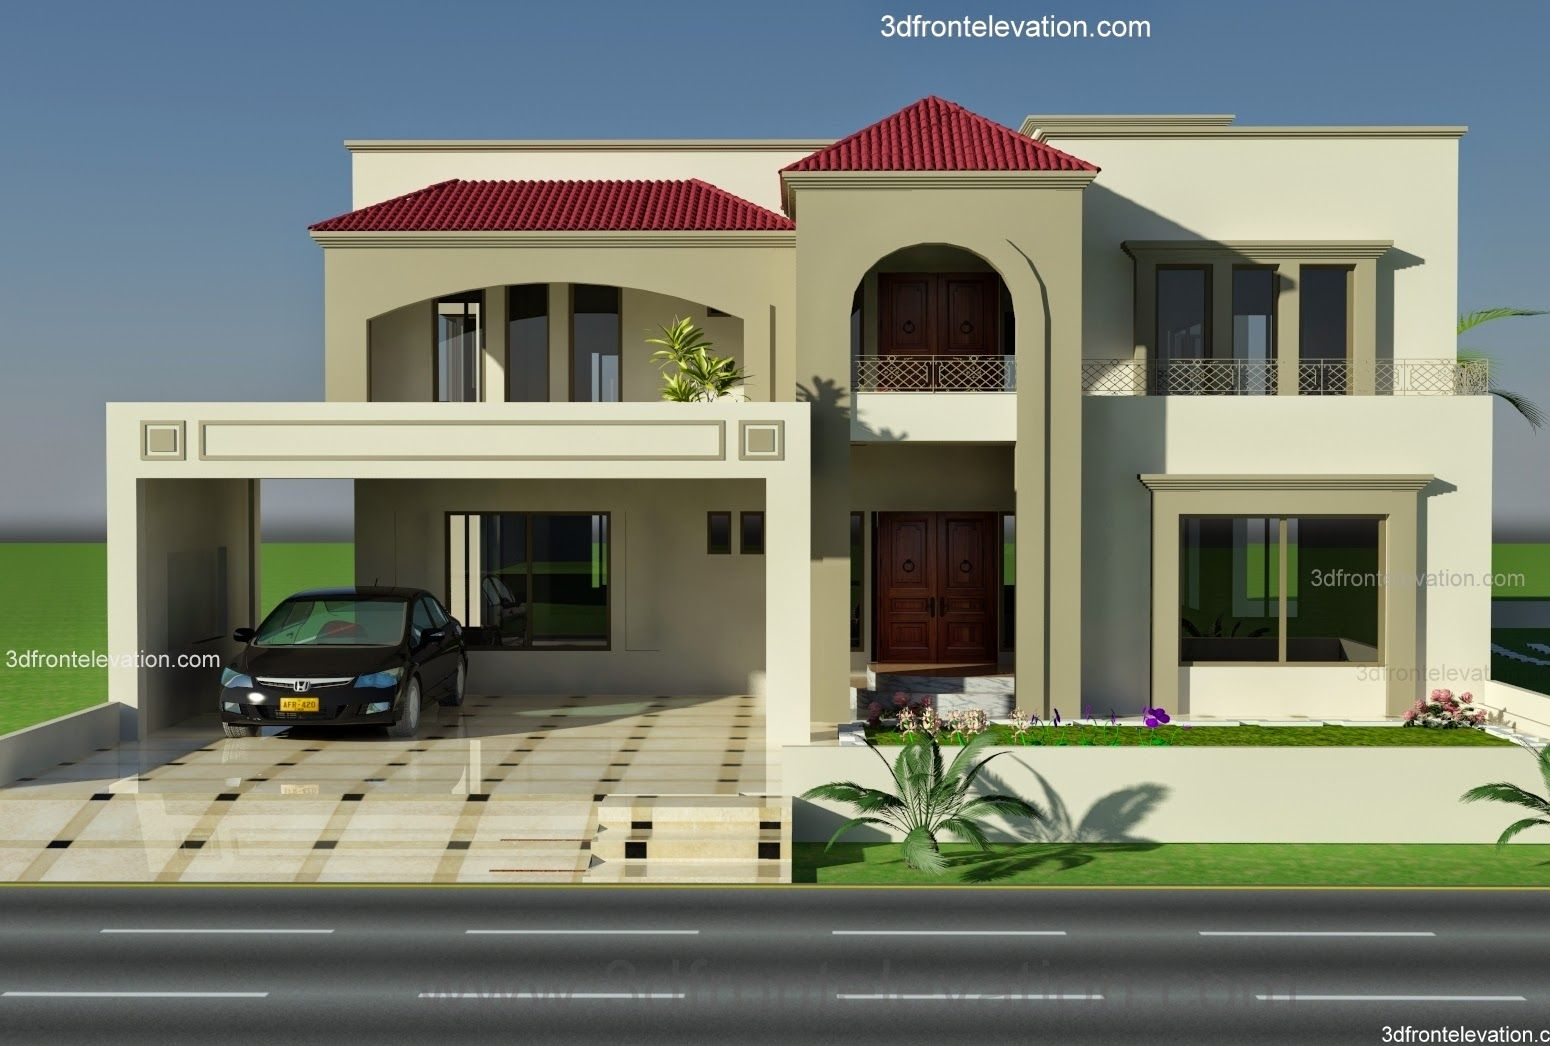 1 Kanal Plot House Design Europen Style In Bahria Town, Lahore, Pakistan